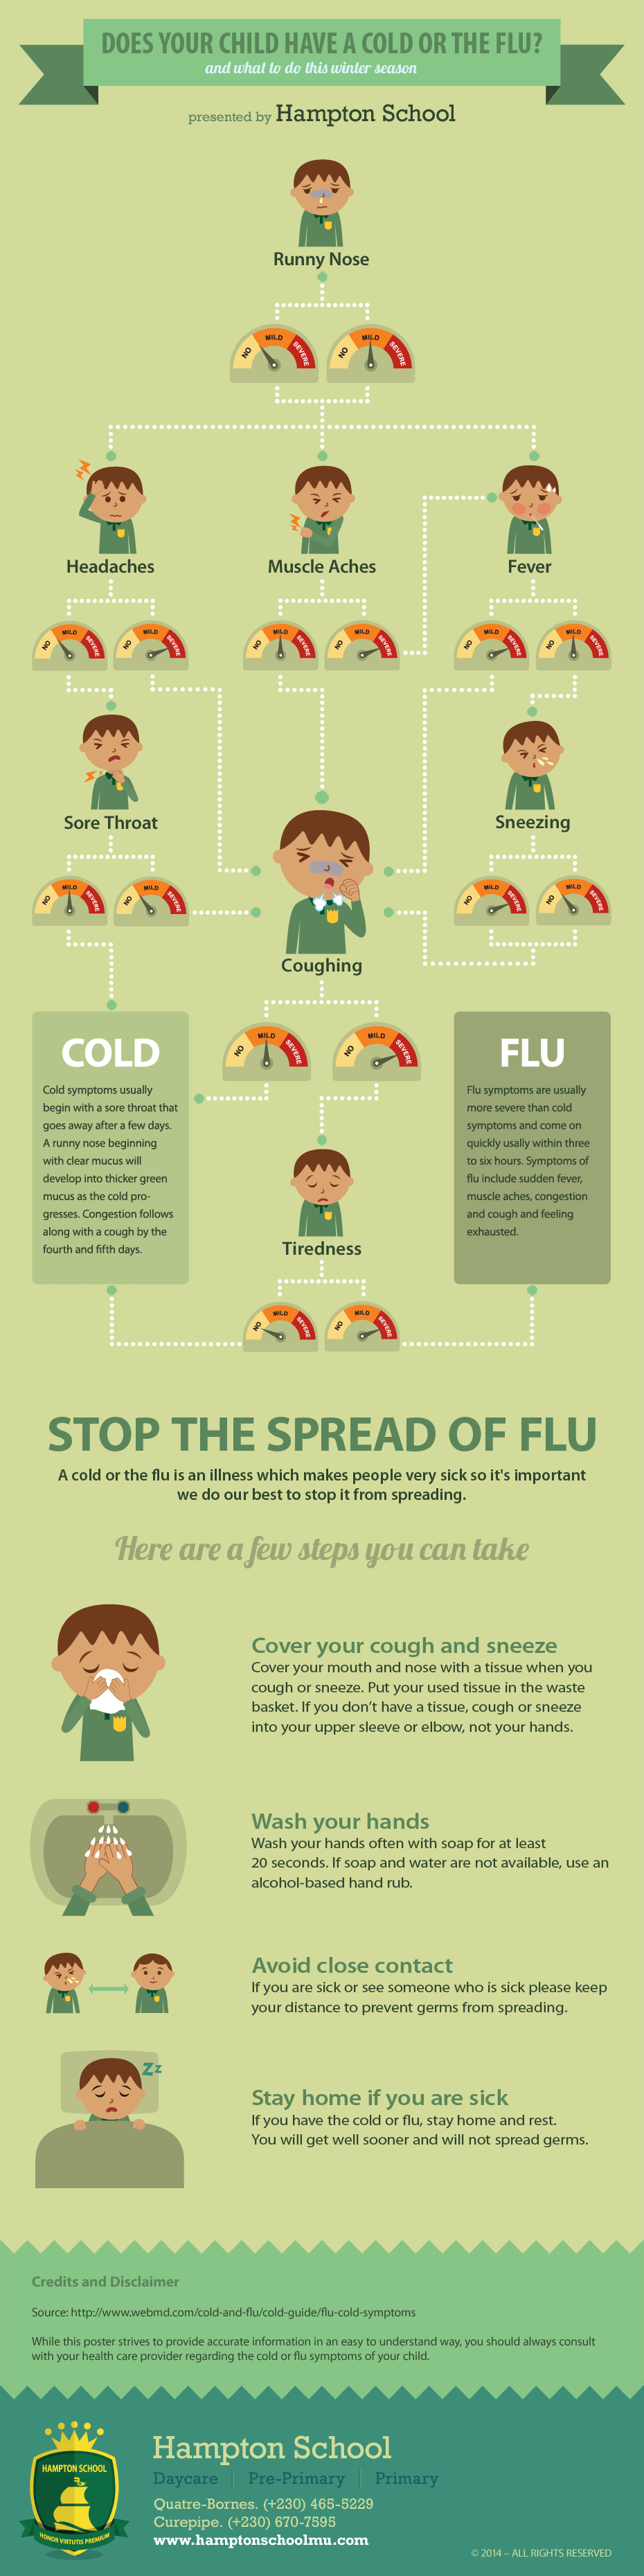 Find out if your child has the cold or flu infographic